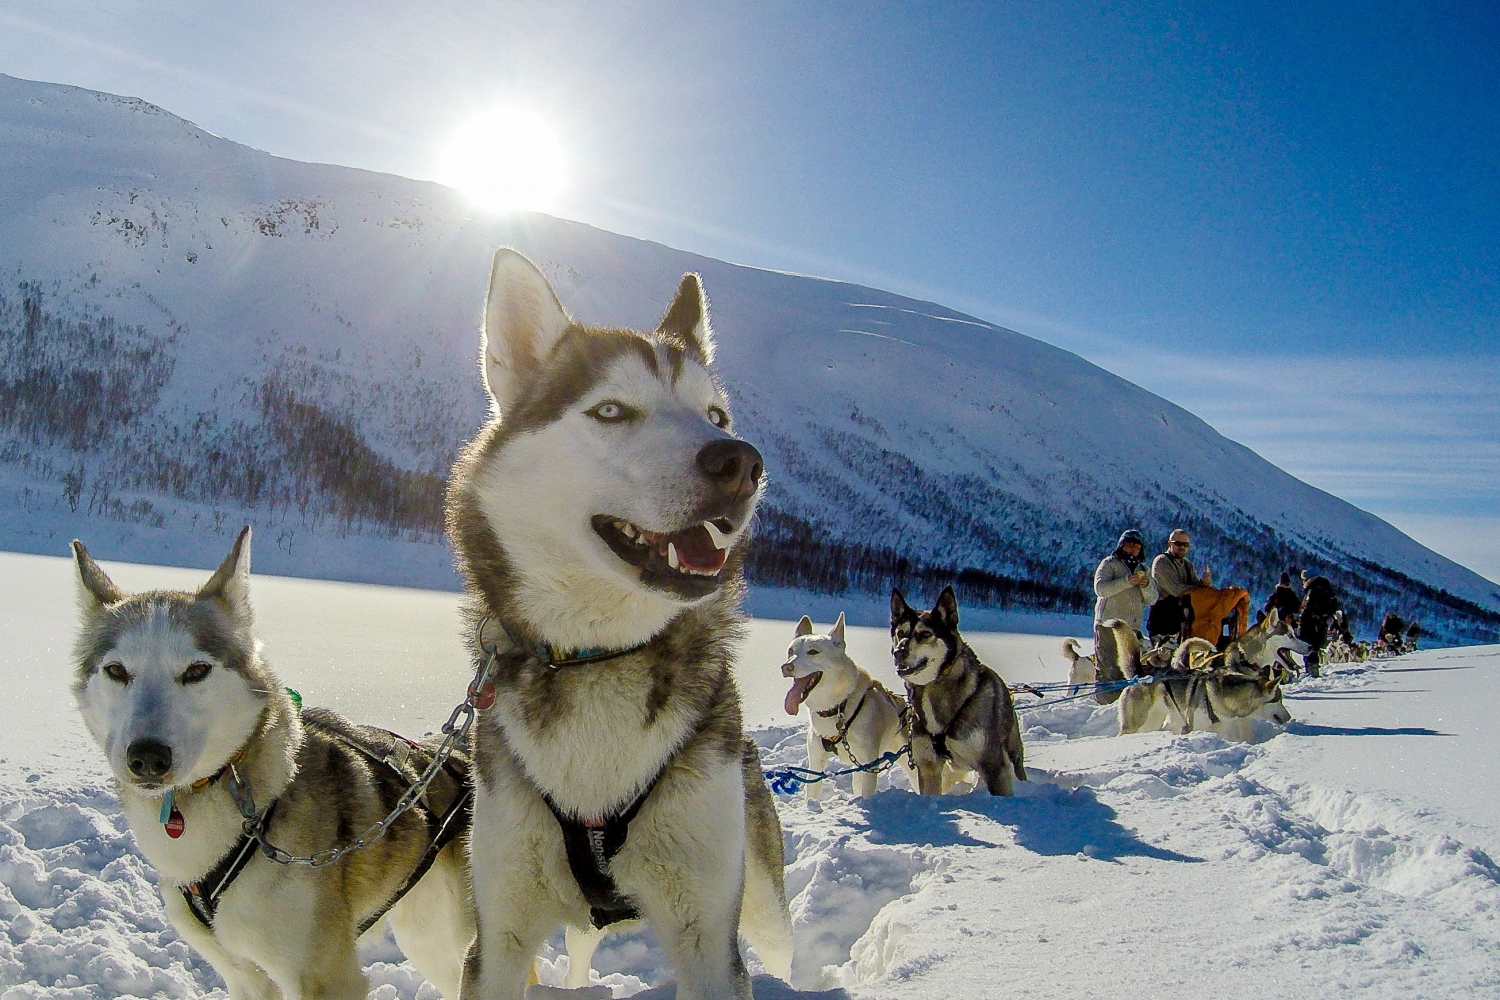 Alaskan husky dogsled in sunny and snowy landscape